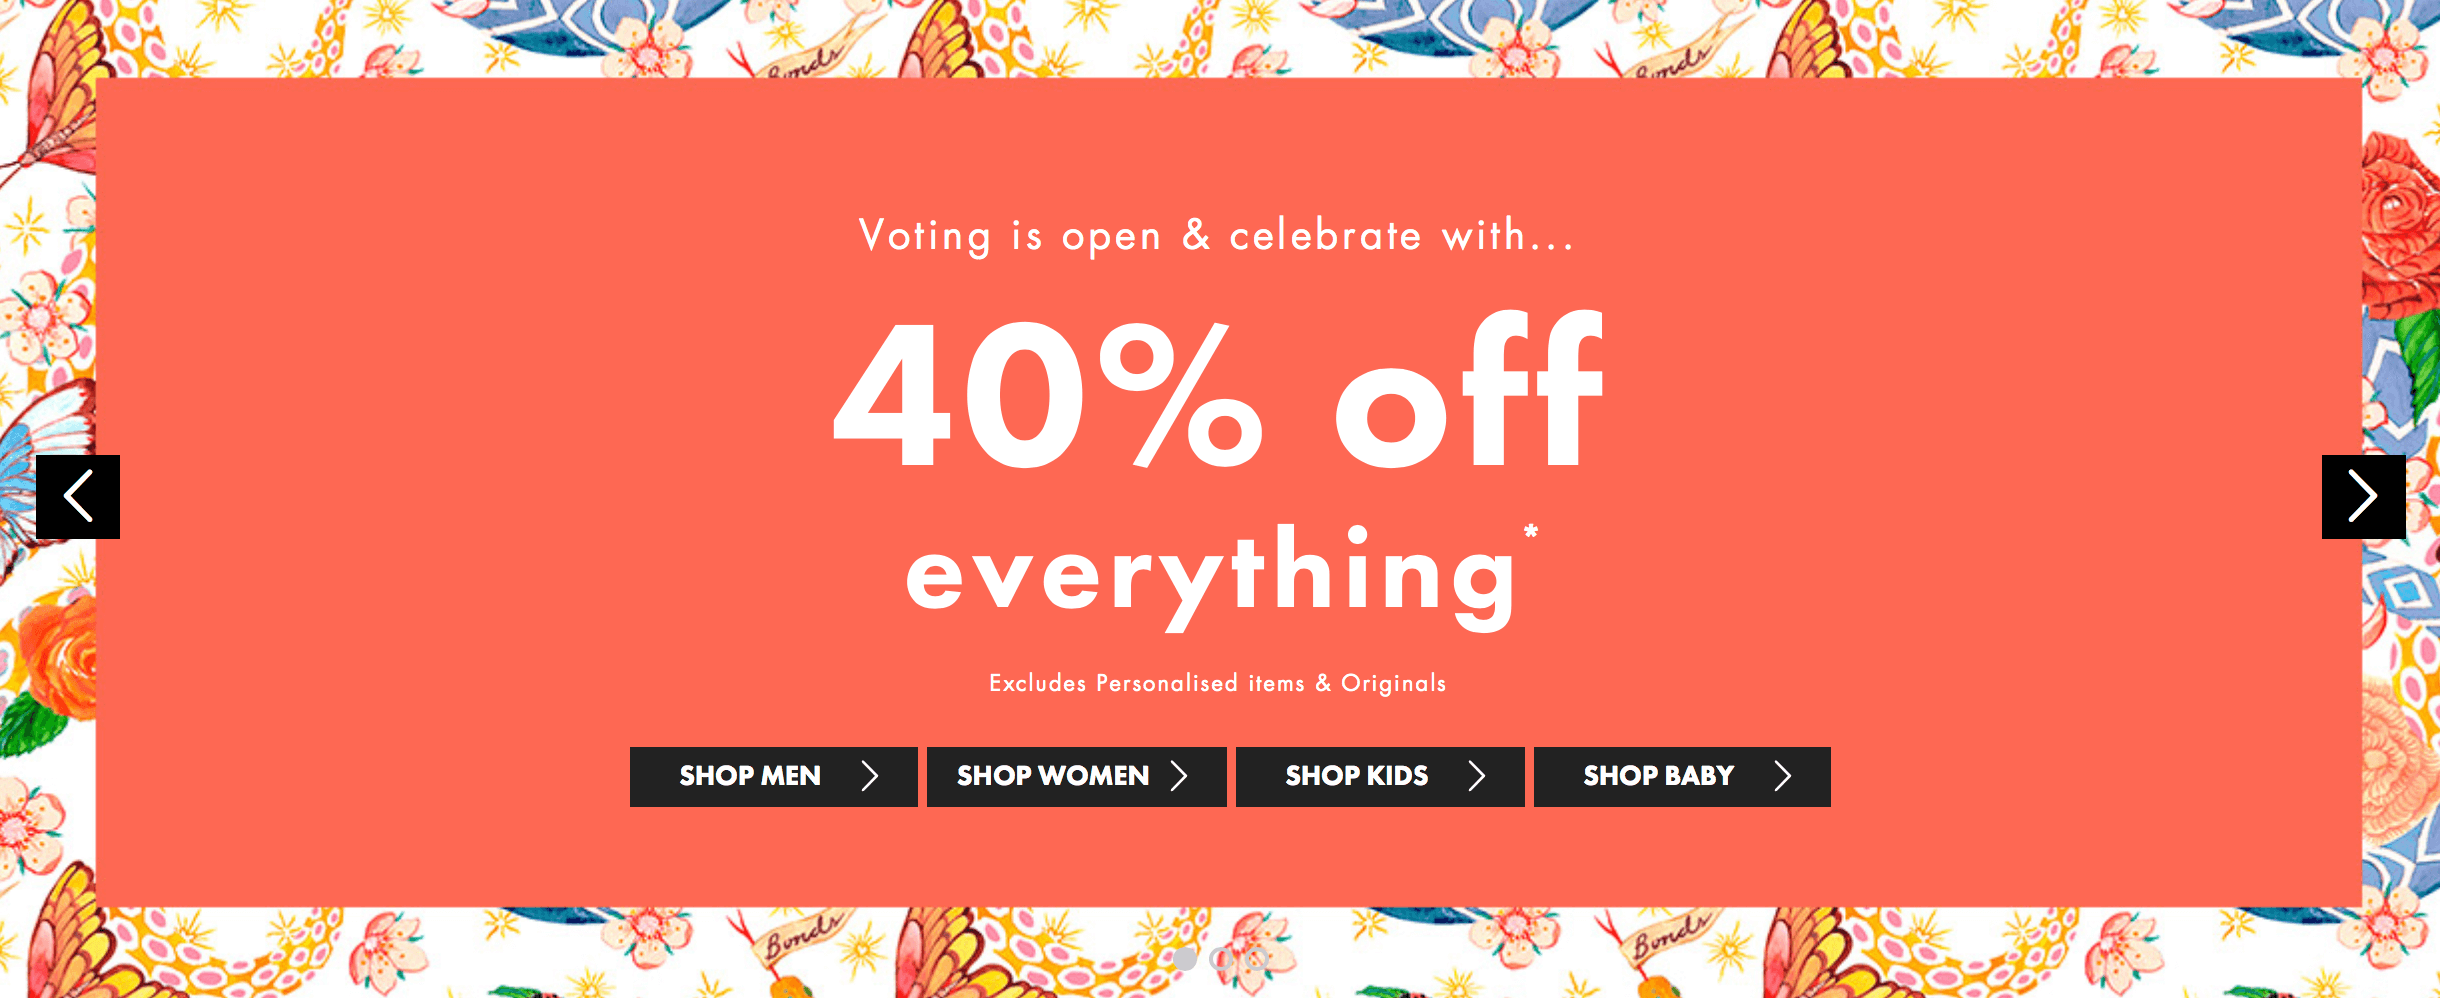 Voting is open and celebrate with... 40% off everything